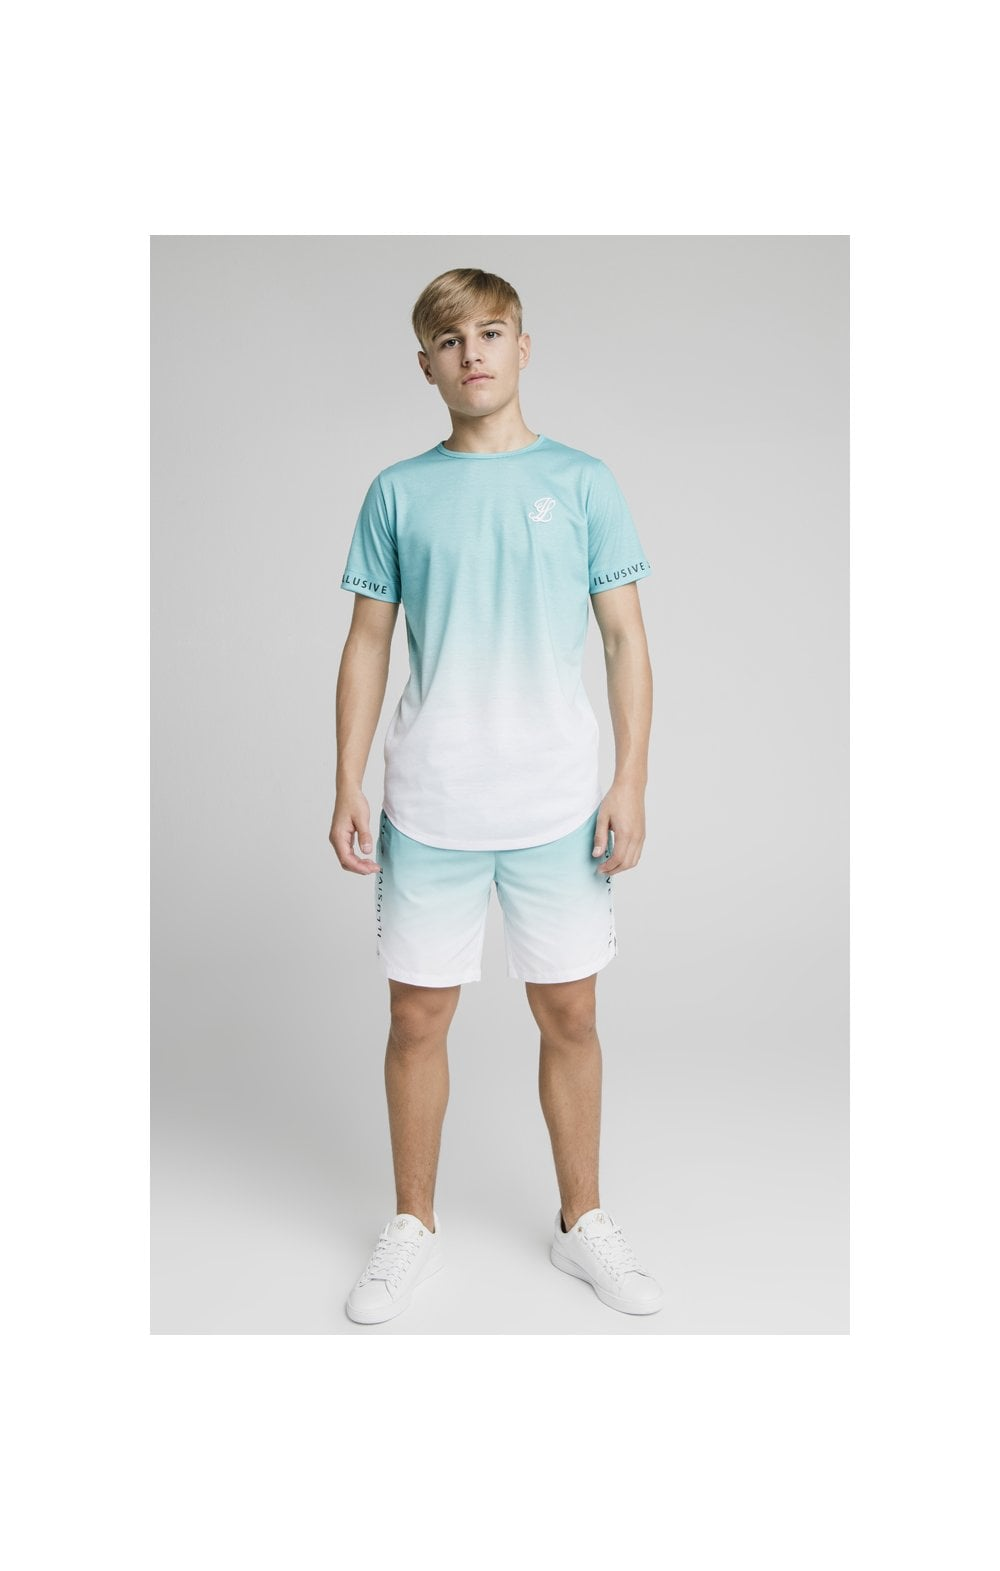 Load image into Gallery viewer, Illusive London Fade Swim Shorts - Teal & White (1)